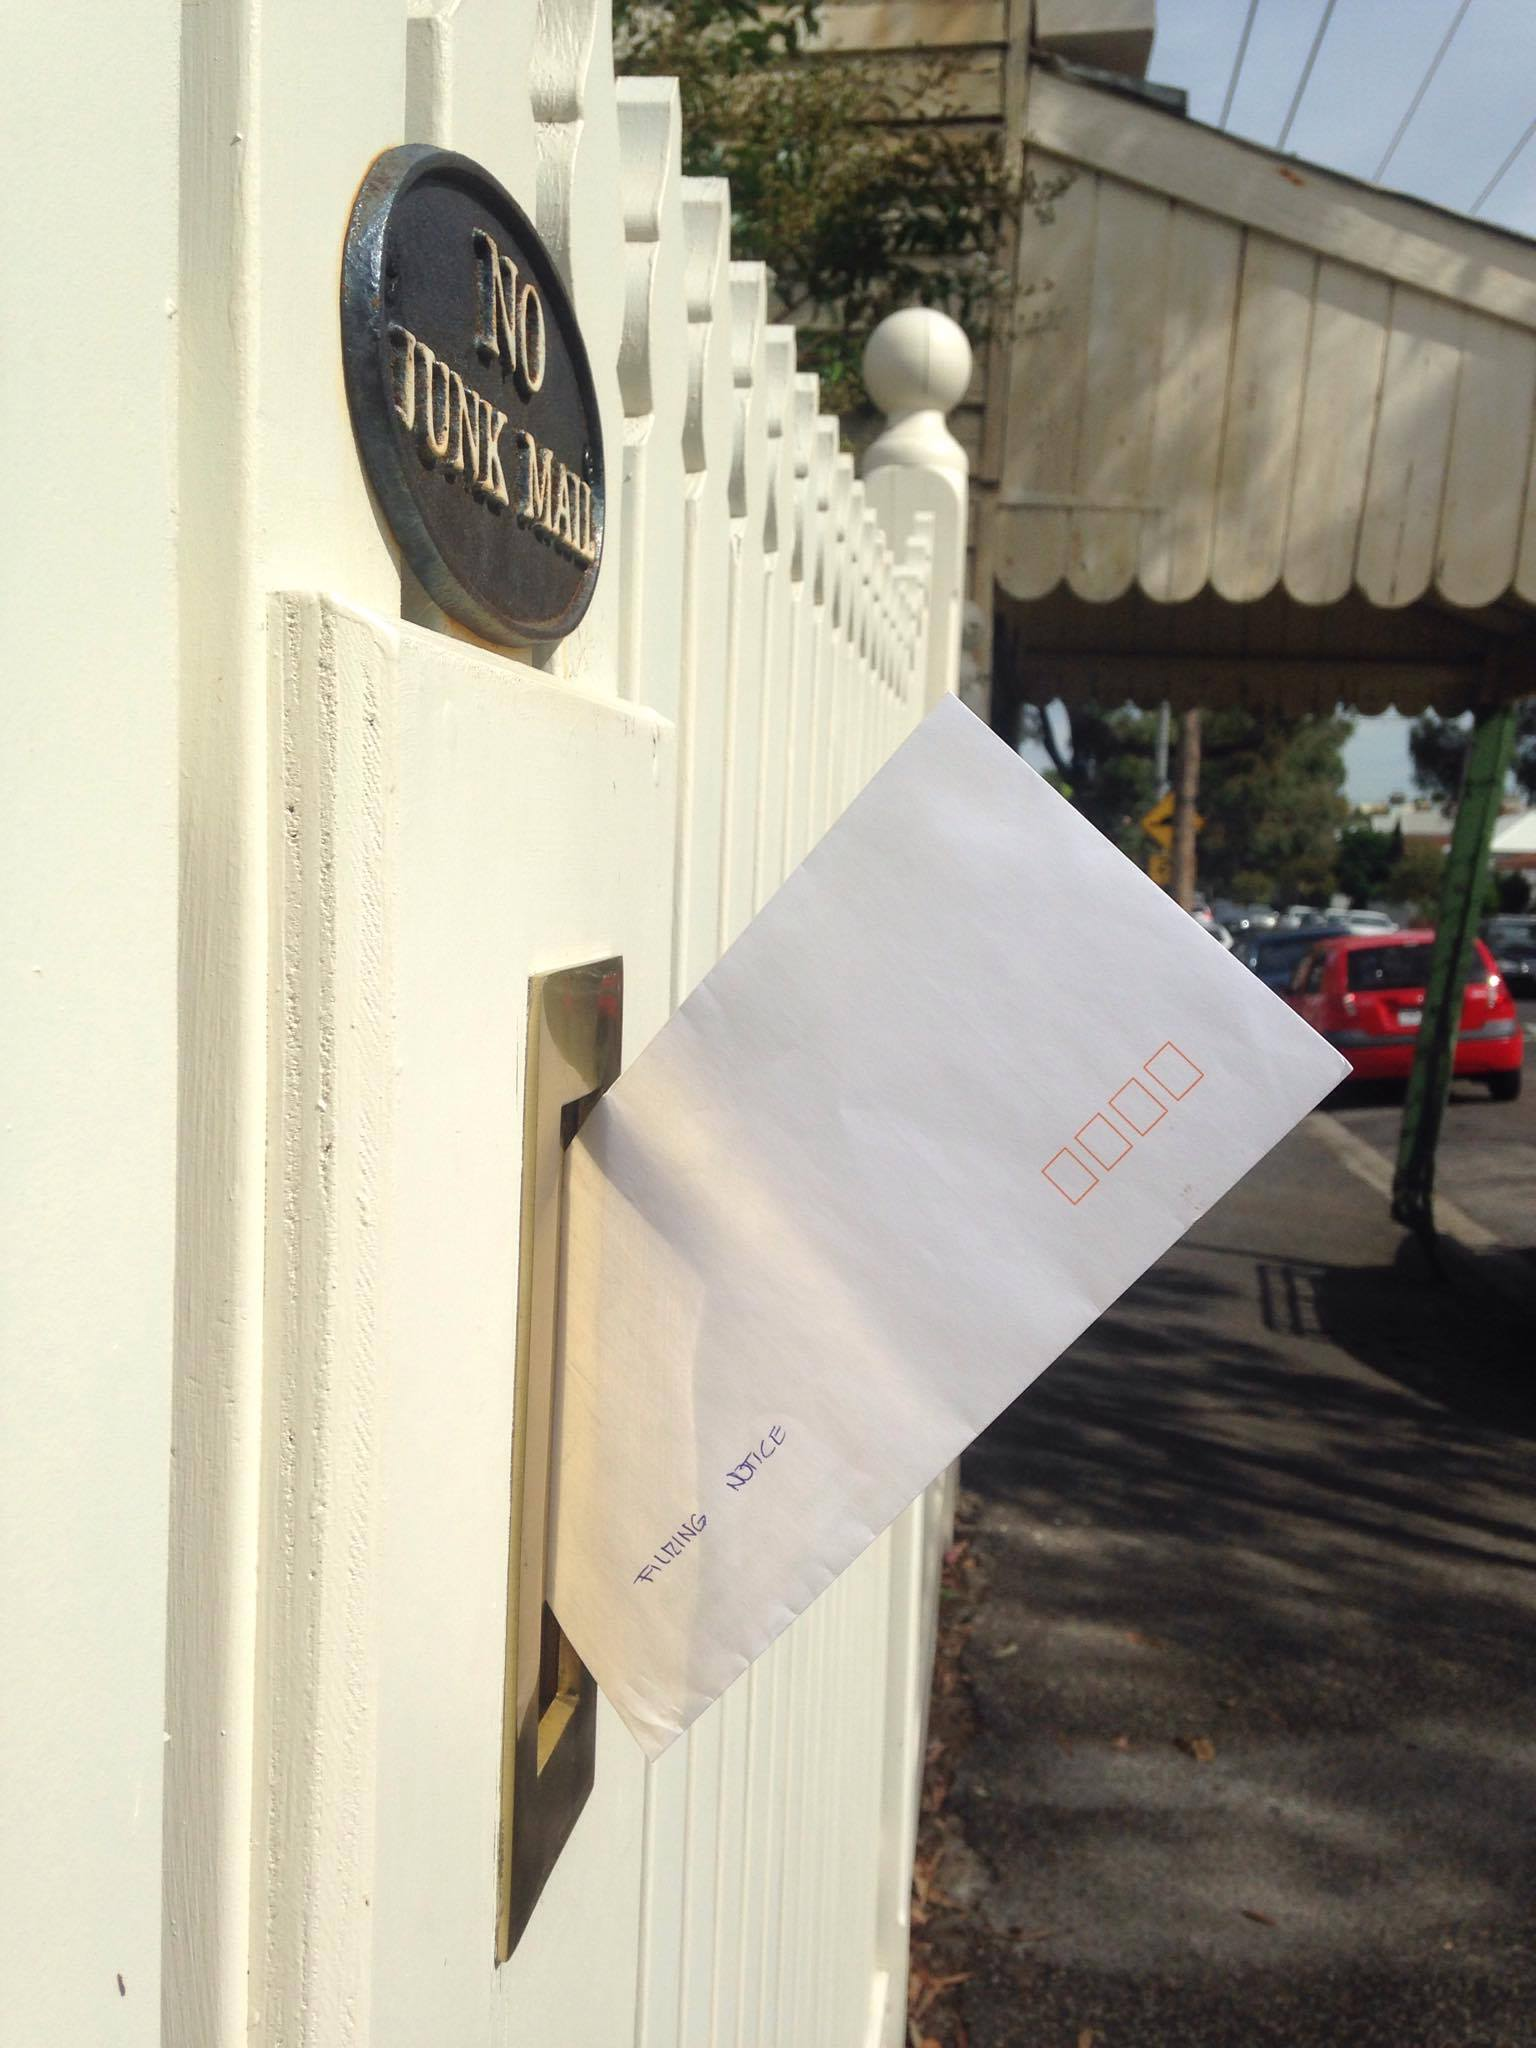 Flemington Letter Drop. Photo credit Daniela Ercoli